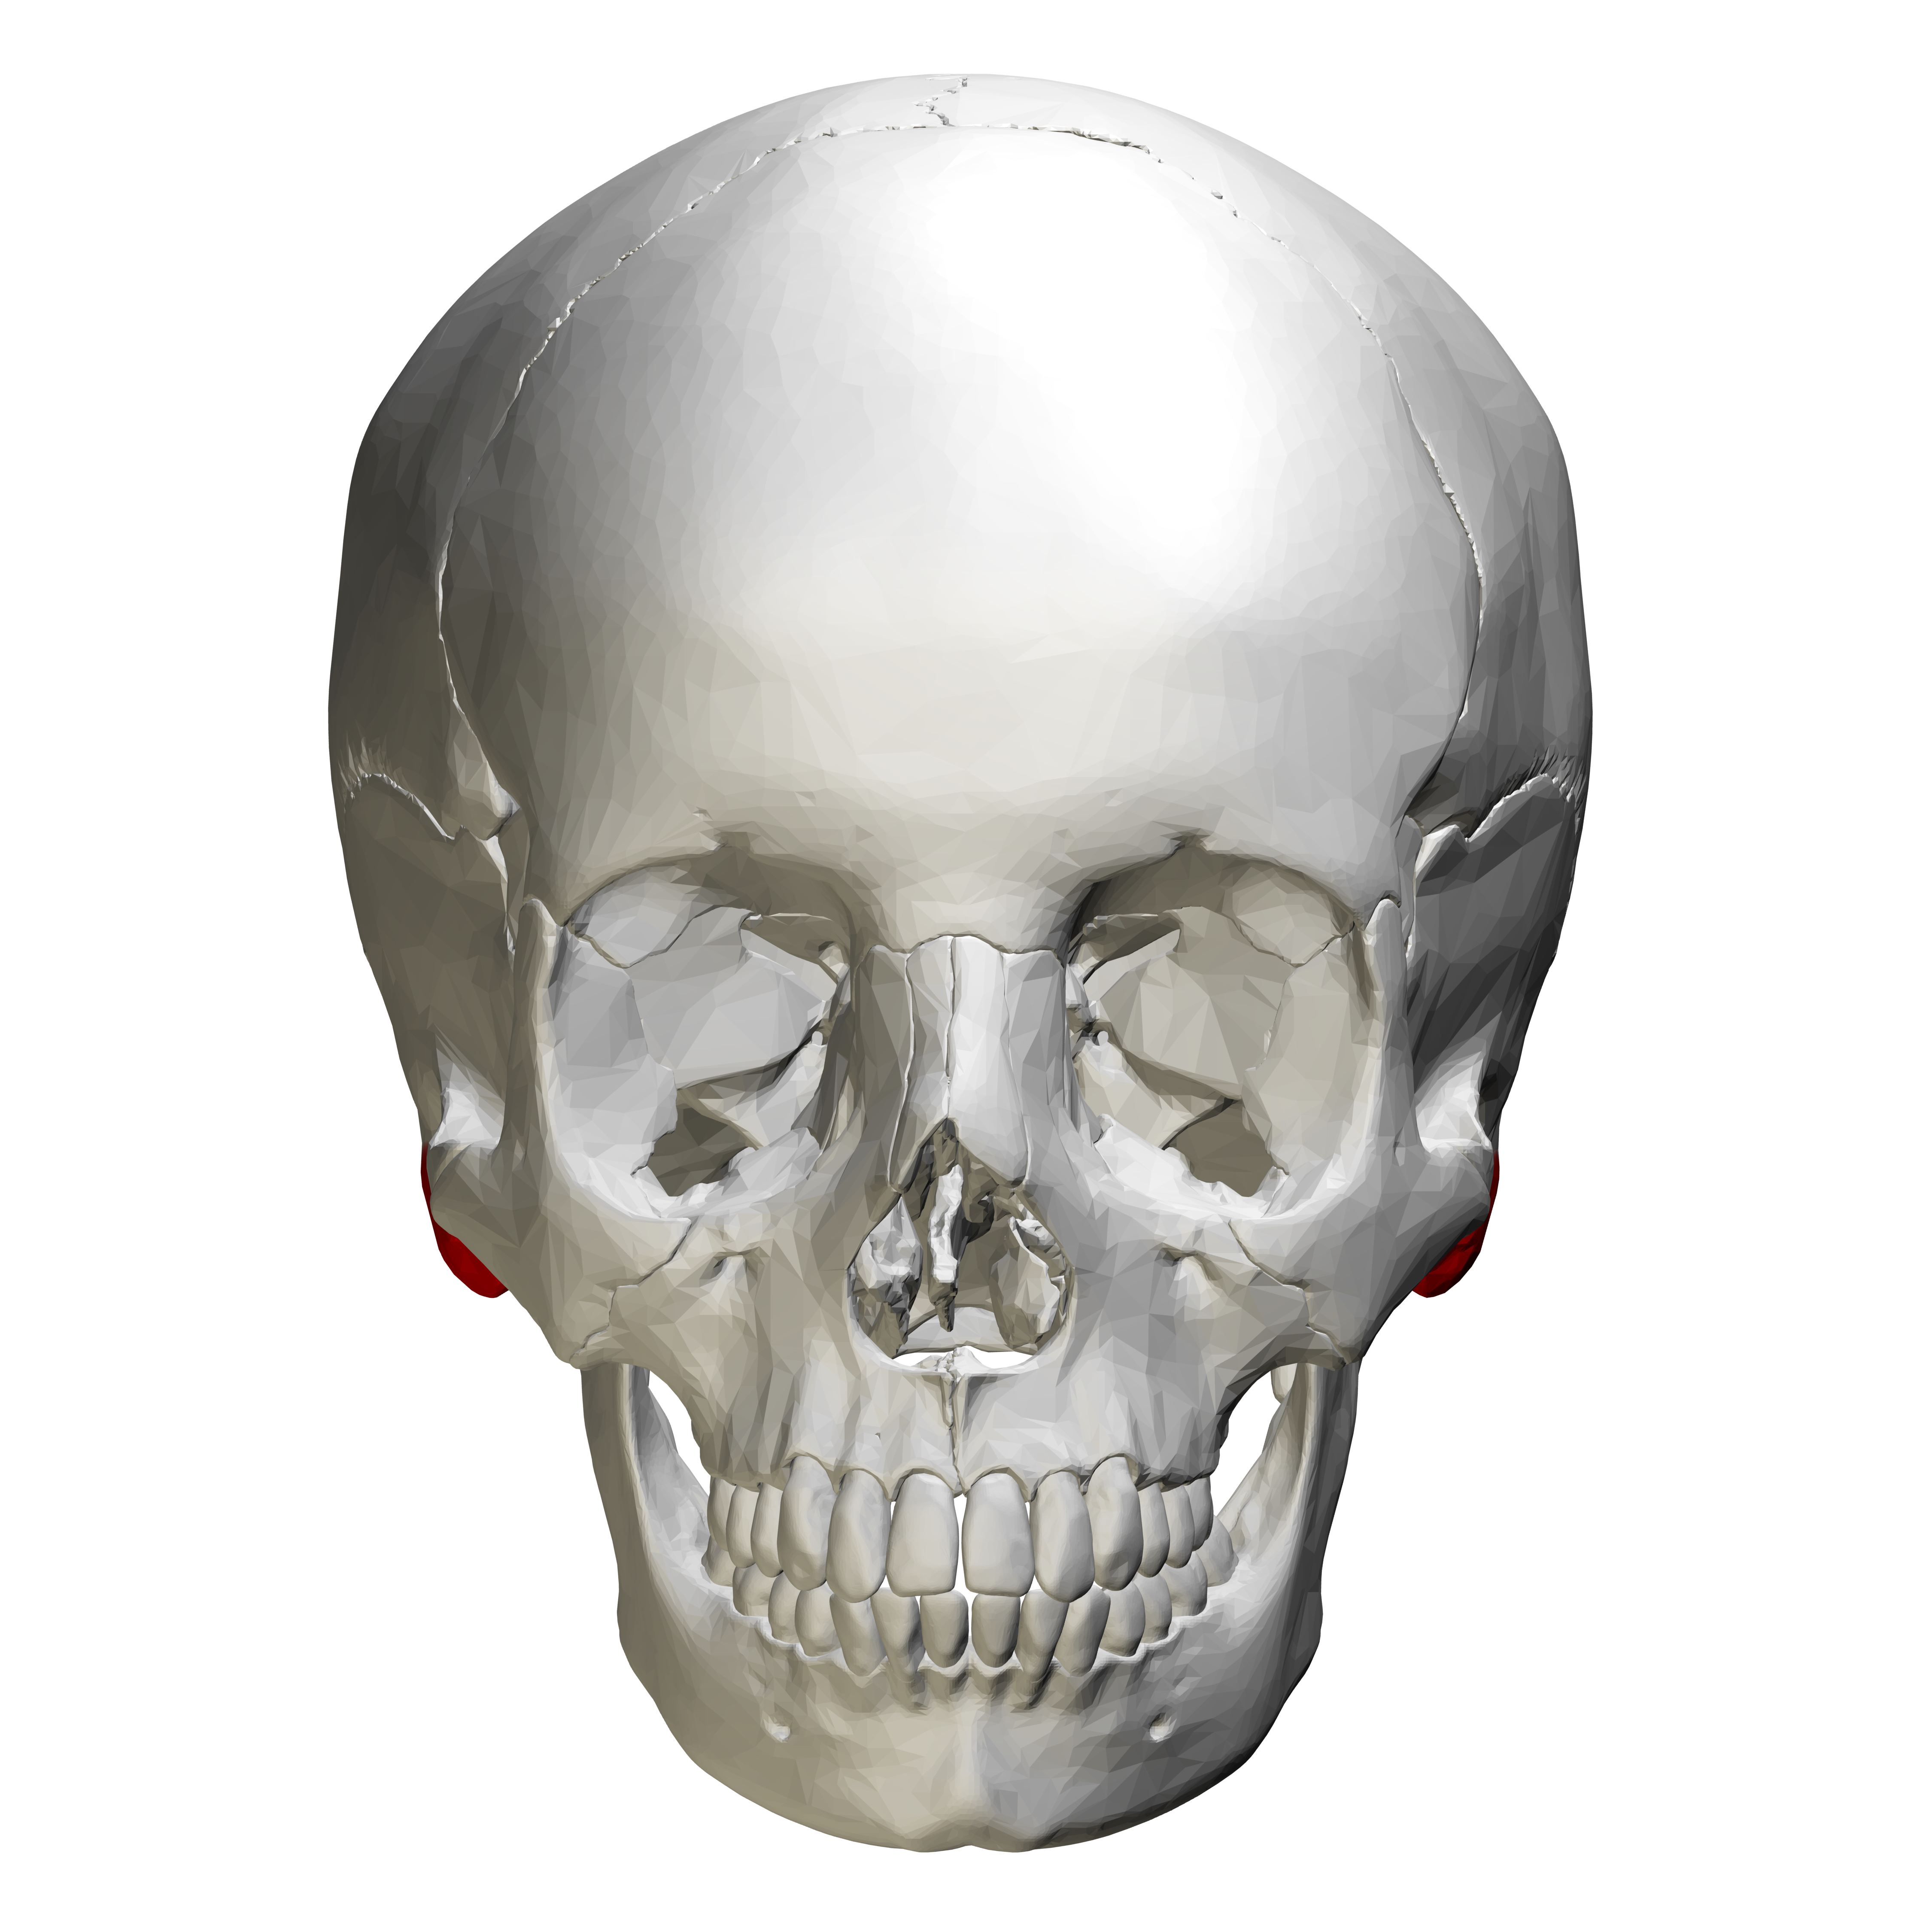 File:Mastoid process - anterior view.png - Wikimedia Commons